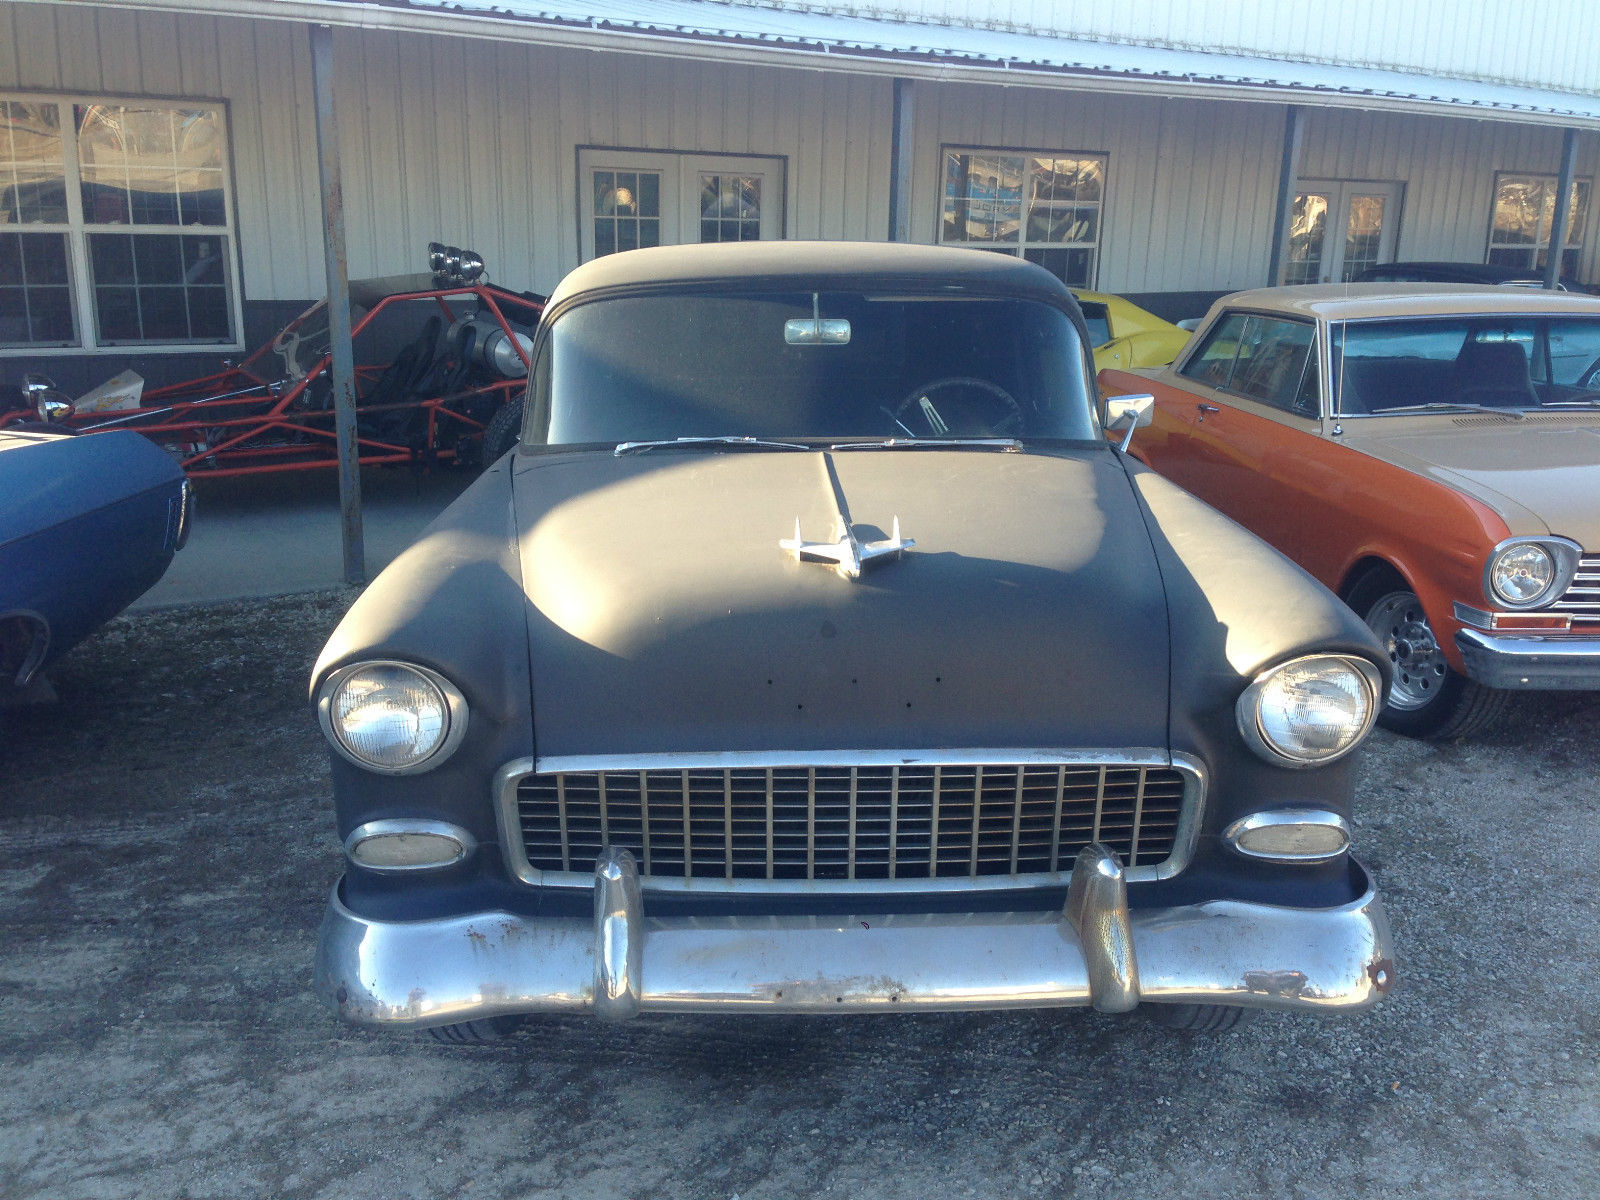 1955 Chevrolet Sedan Delivery 327/350 retro traditional hot rod 2 dr ...